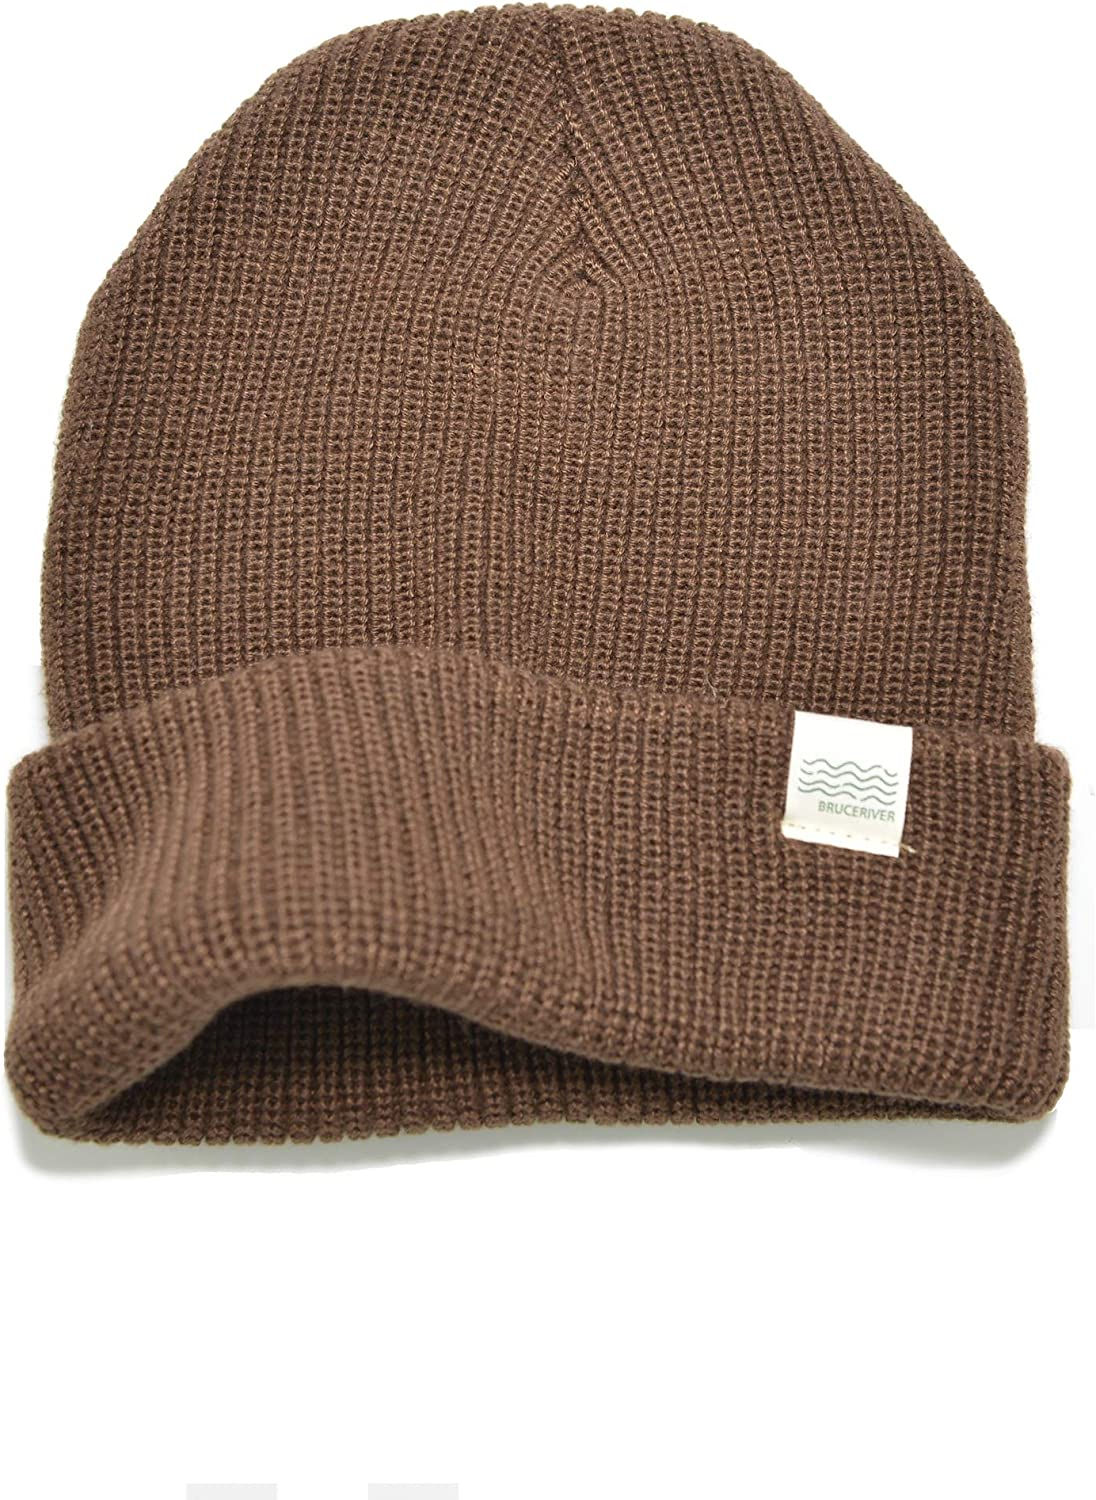 Bruceriver Recyled Ranking TOP5 Beanie Knit for Hats Women low-pricing Men